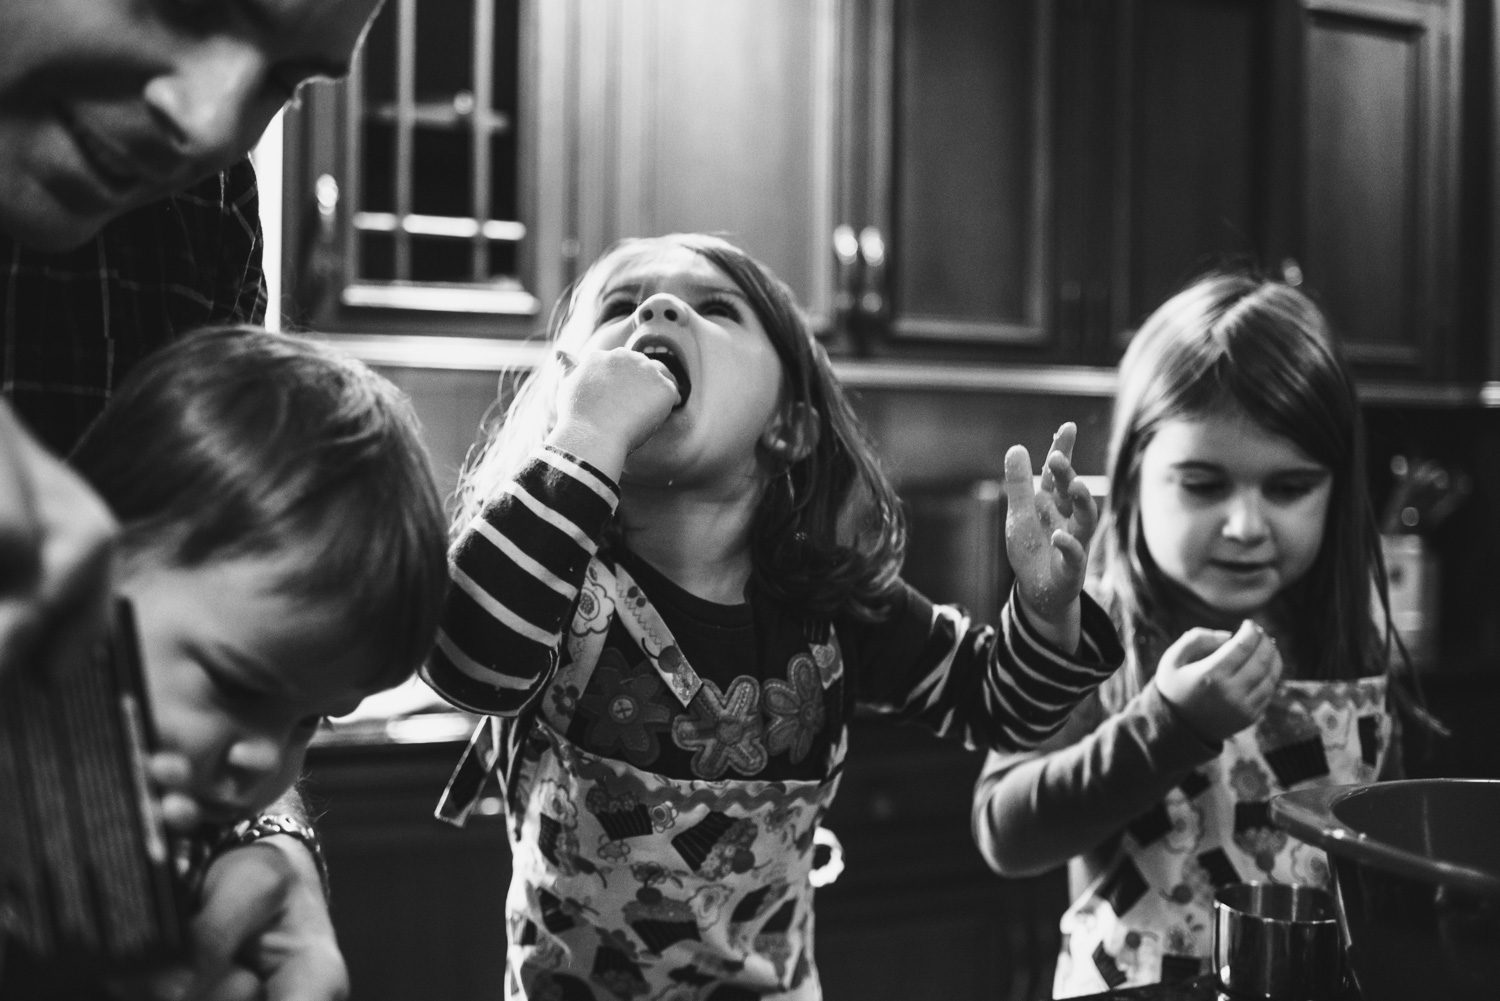 A little girl shoves a handful of cookie dough in her mouth while baking.